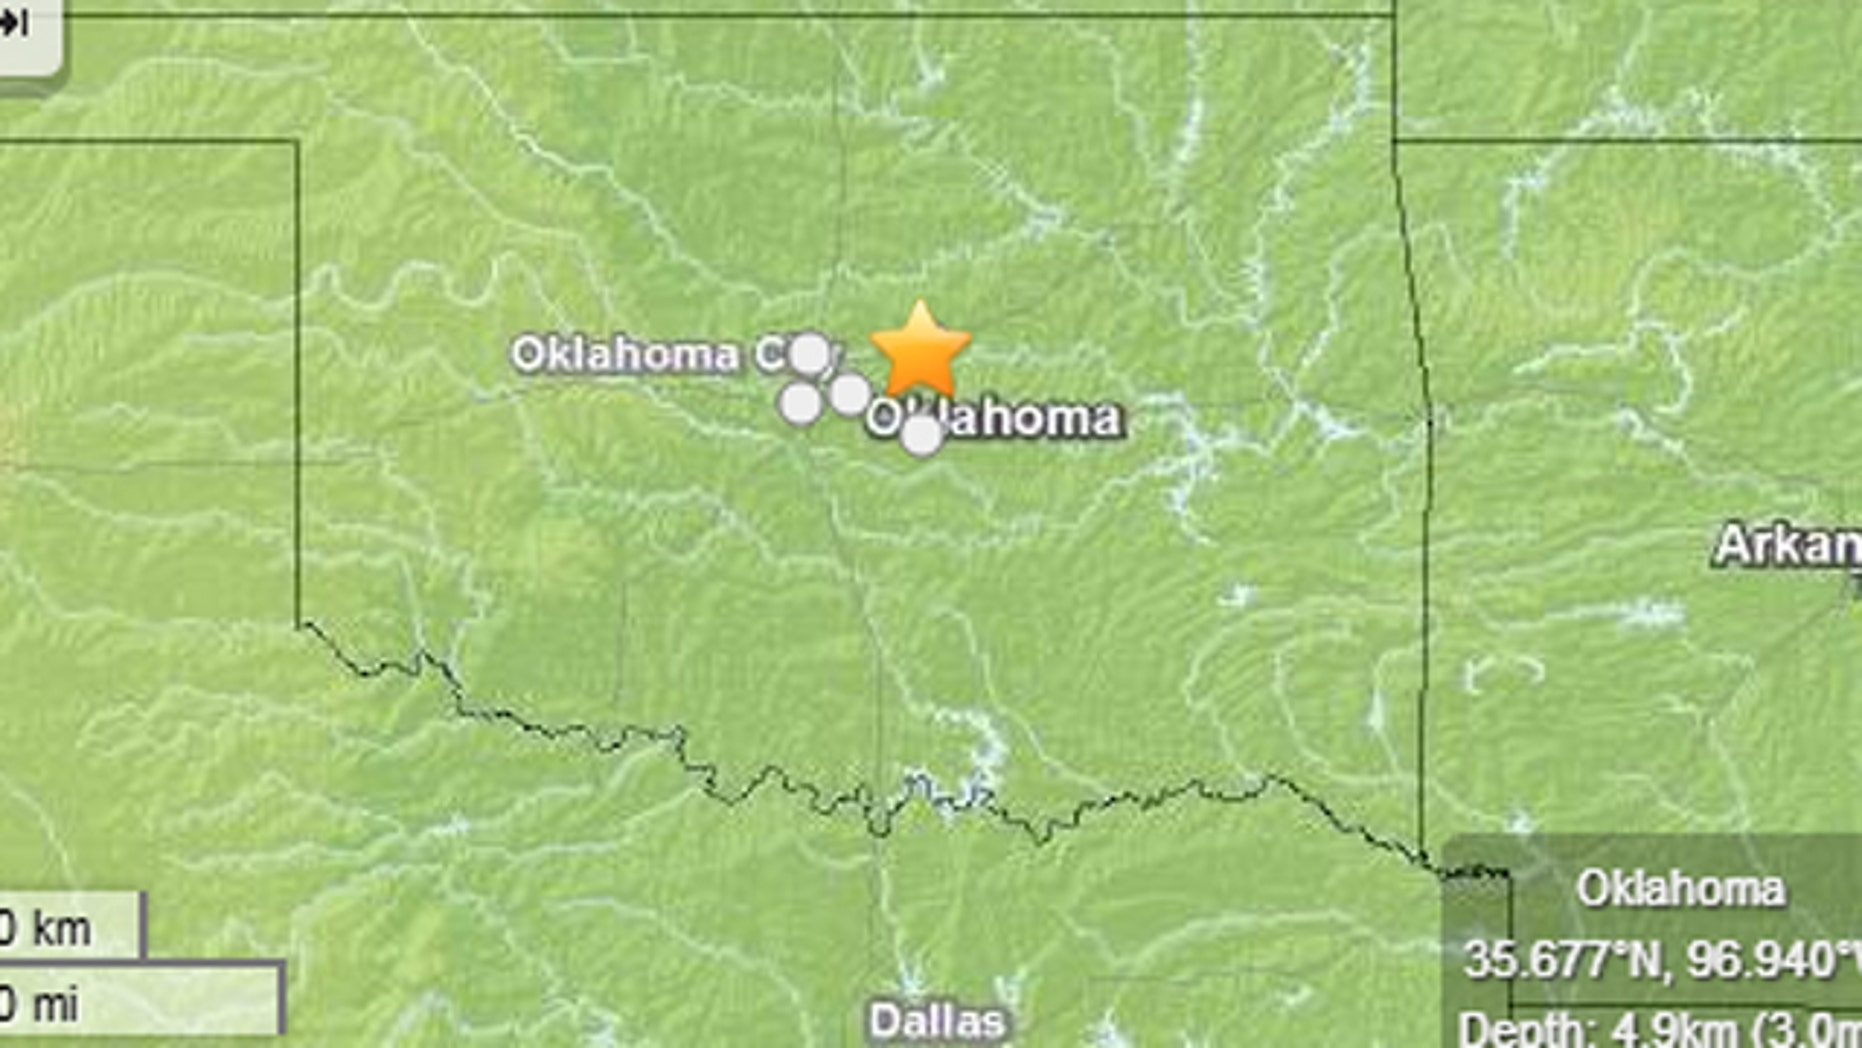 April 16, 2013: A series of earthquakes shook central Oklahoma, but no injuries have yet been reported.